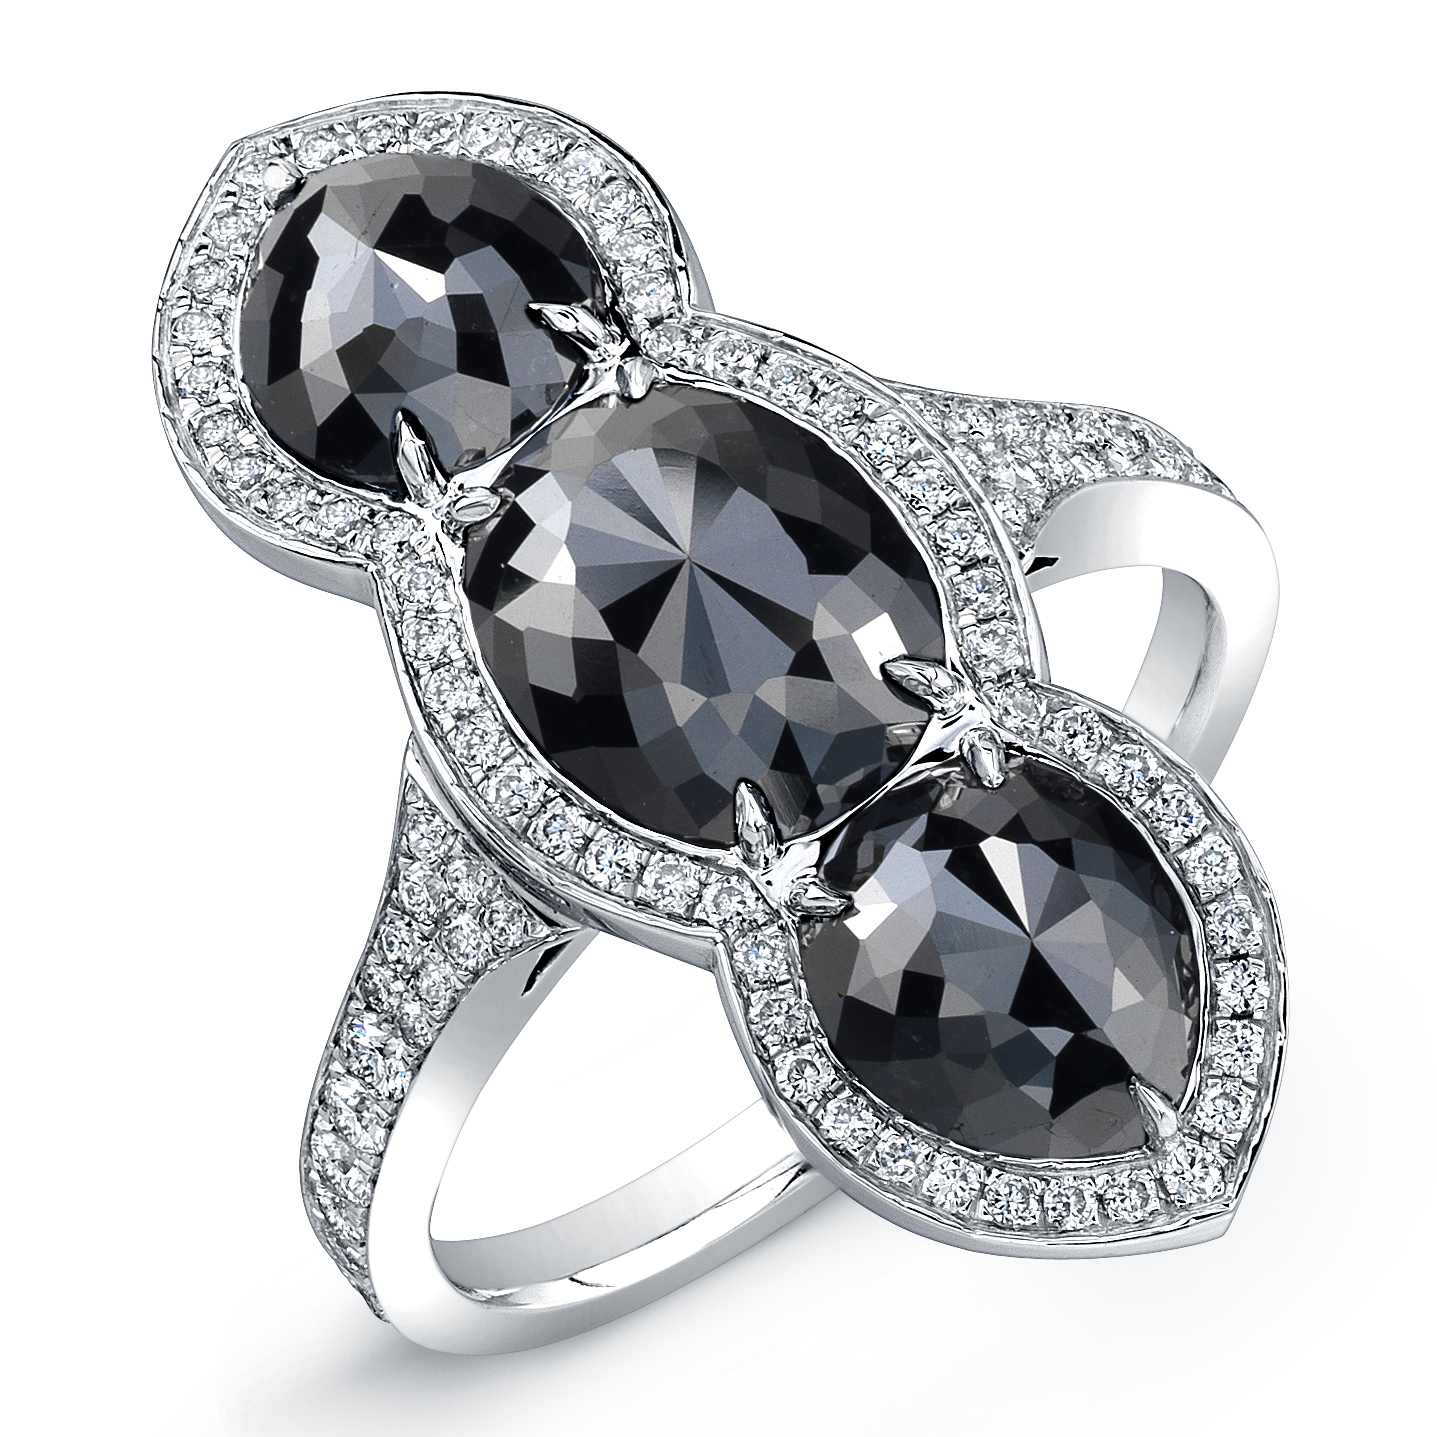 Rahaminov black diamond three-stone ring | JCK On Your Market